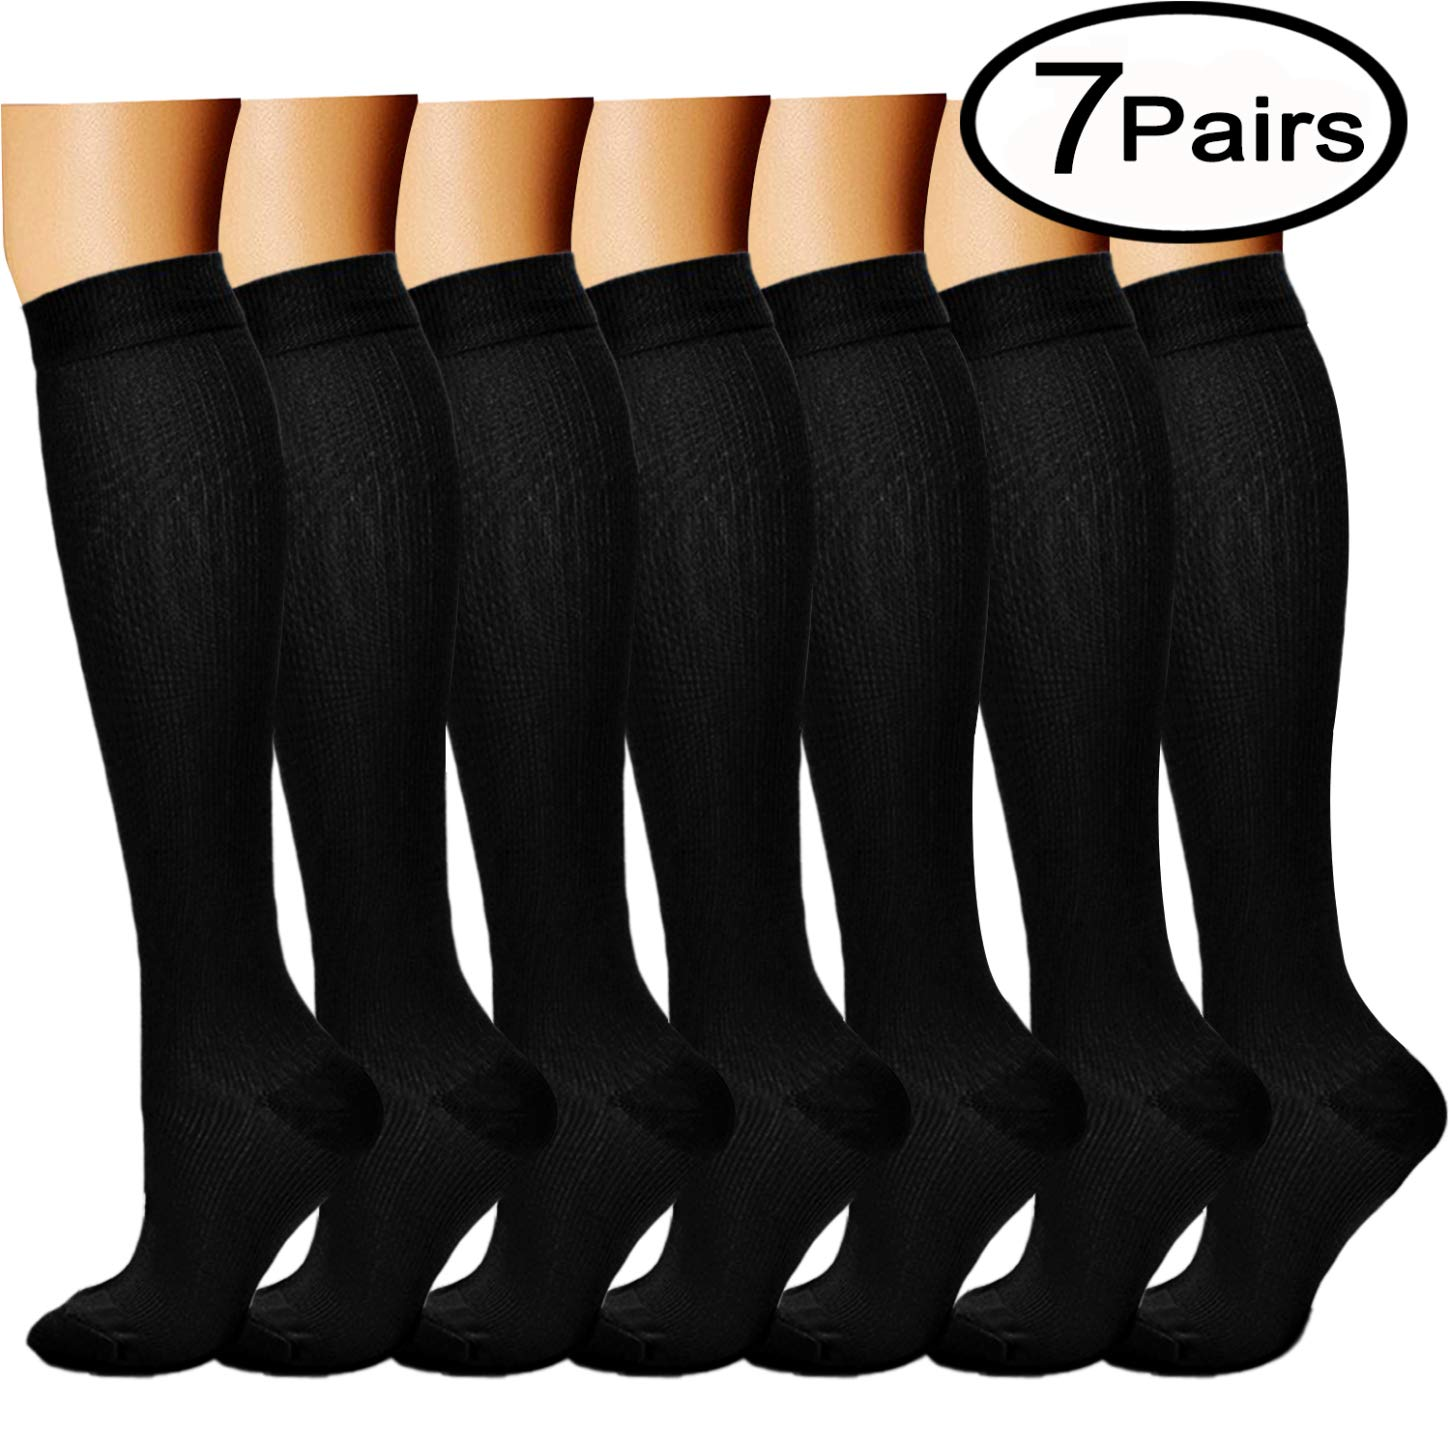 Compression Socks (7 Pairs), 15-20 mmhg is BEST Graduated Athletic & Medical for Men & Women, Running, Travel, Nurses, Pregnant - Boost Performance, Blood Circulation & Recovery (Large/X-Large, Black)